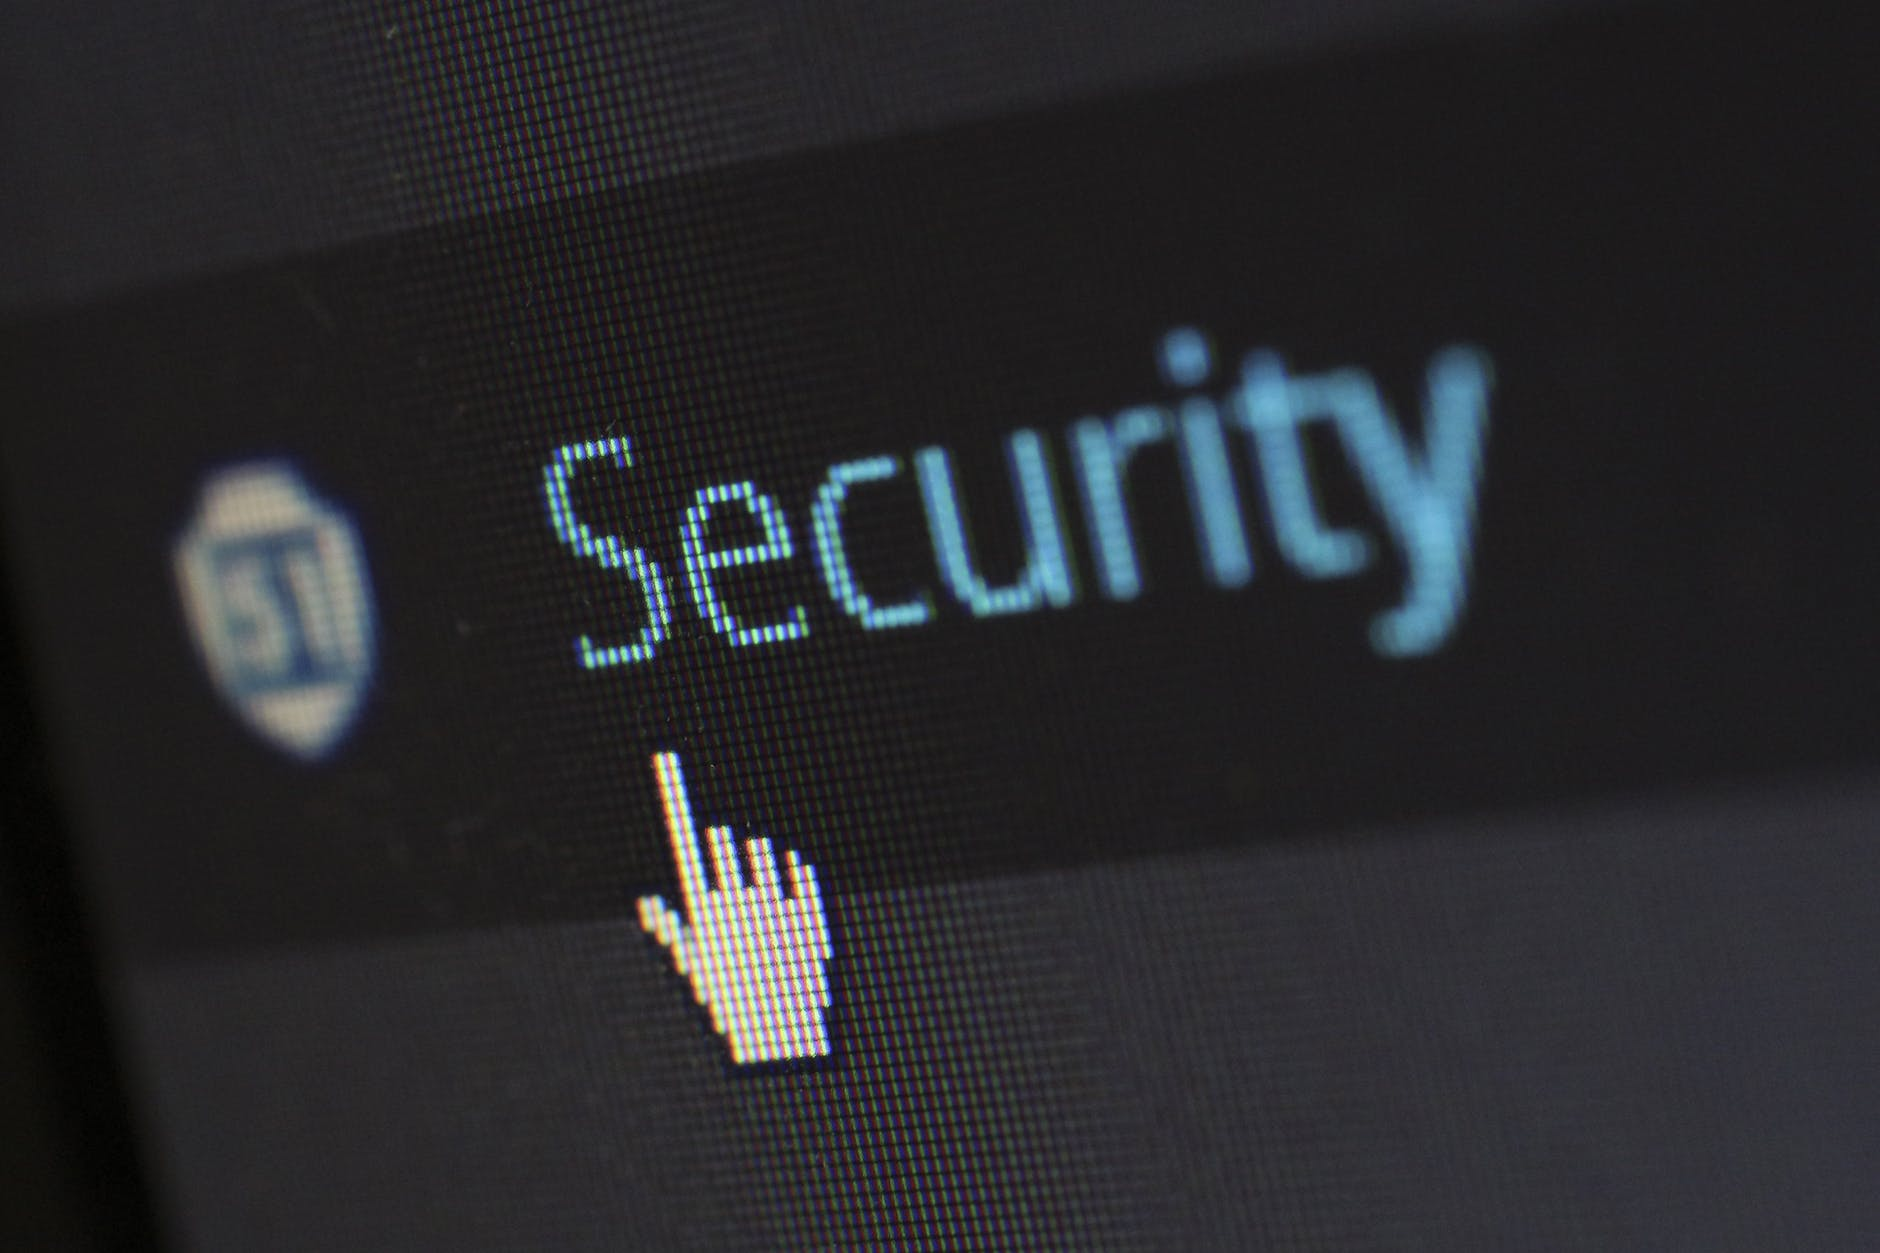 How Cyber Security is Relevant to Every Industry